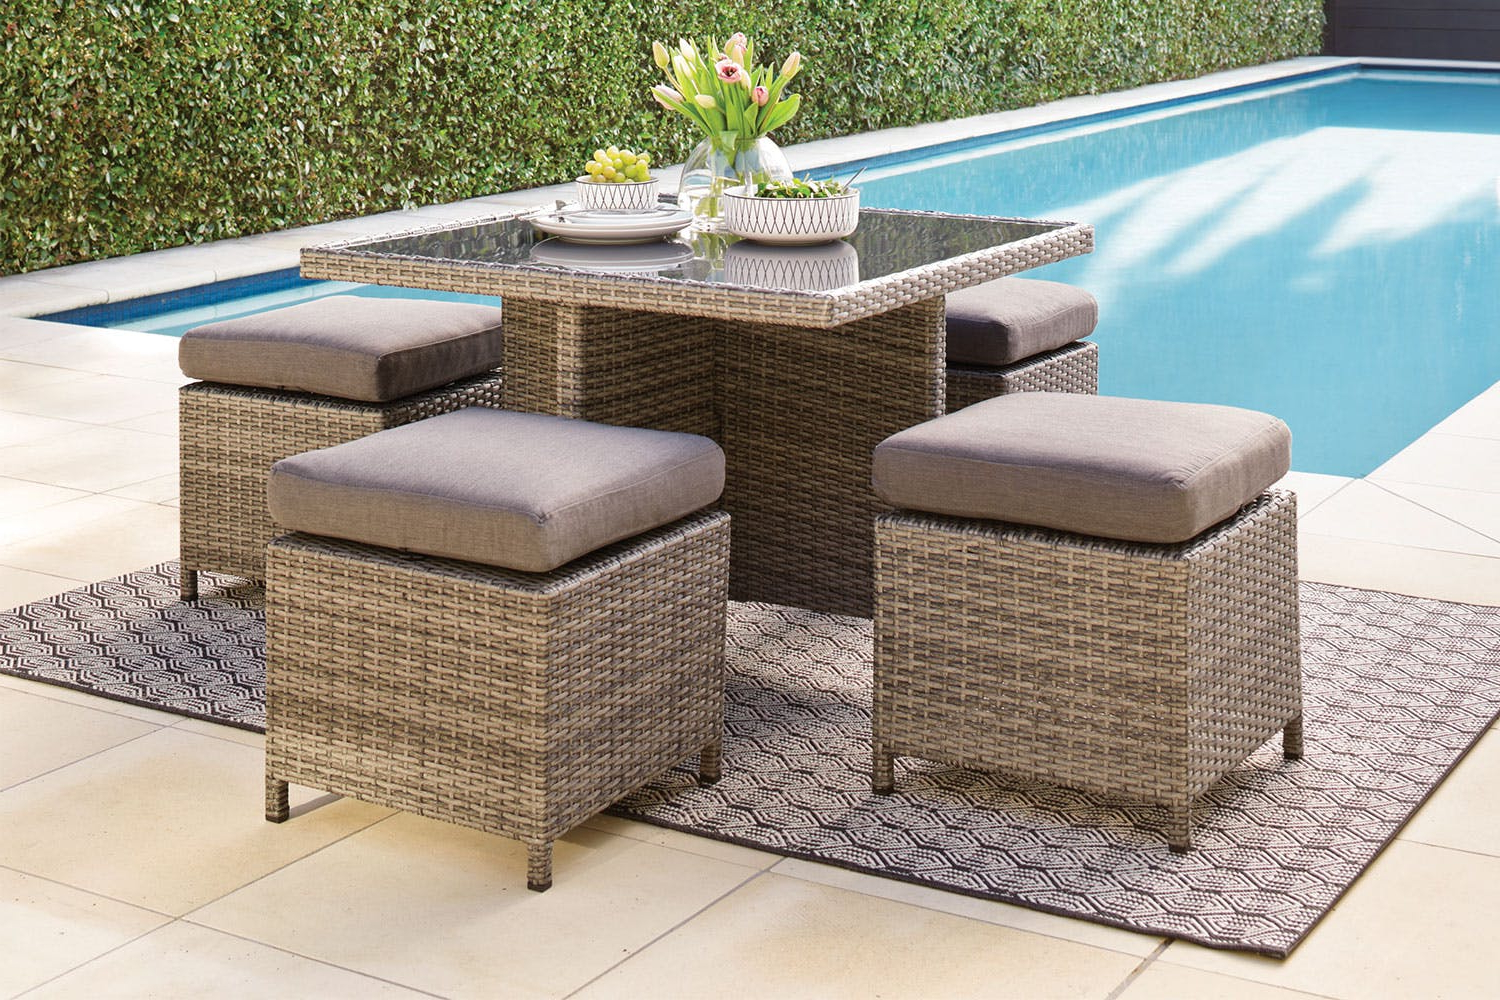 Outdoor Furniture Ipdd Conrose Outdoor Furniture Package Harvey norman New Zealand